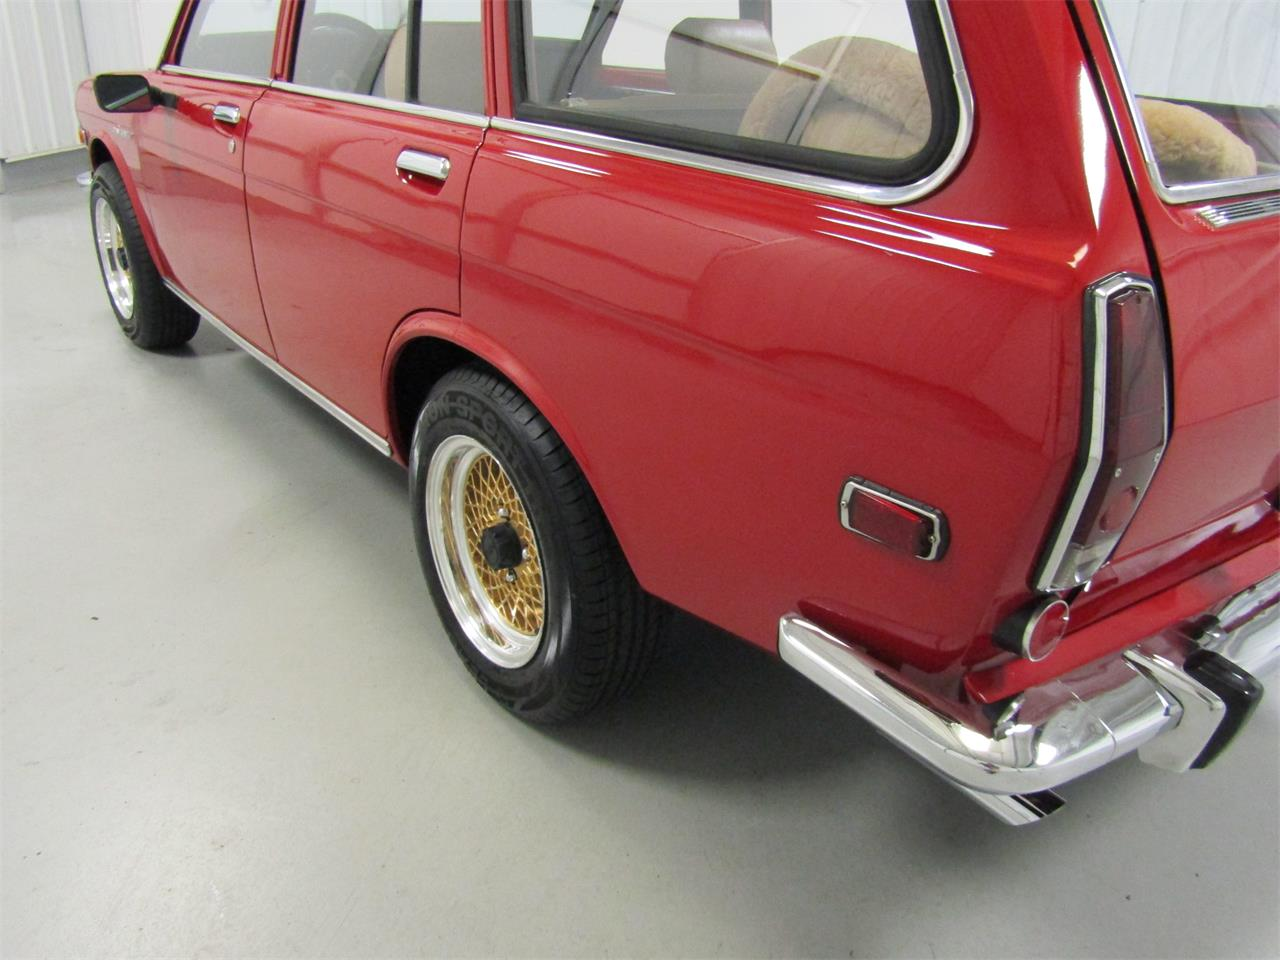 Large Picture of '70 Datsun 510 located in Virginia - $19,900.00 Offered by Duncan Imports & Classic Cars - O676